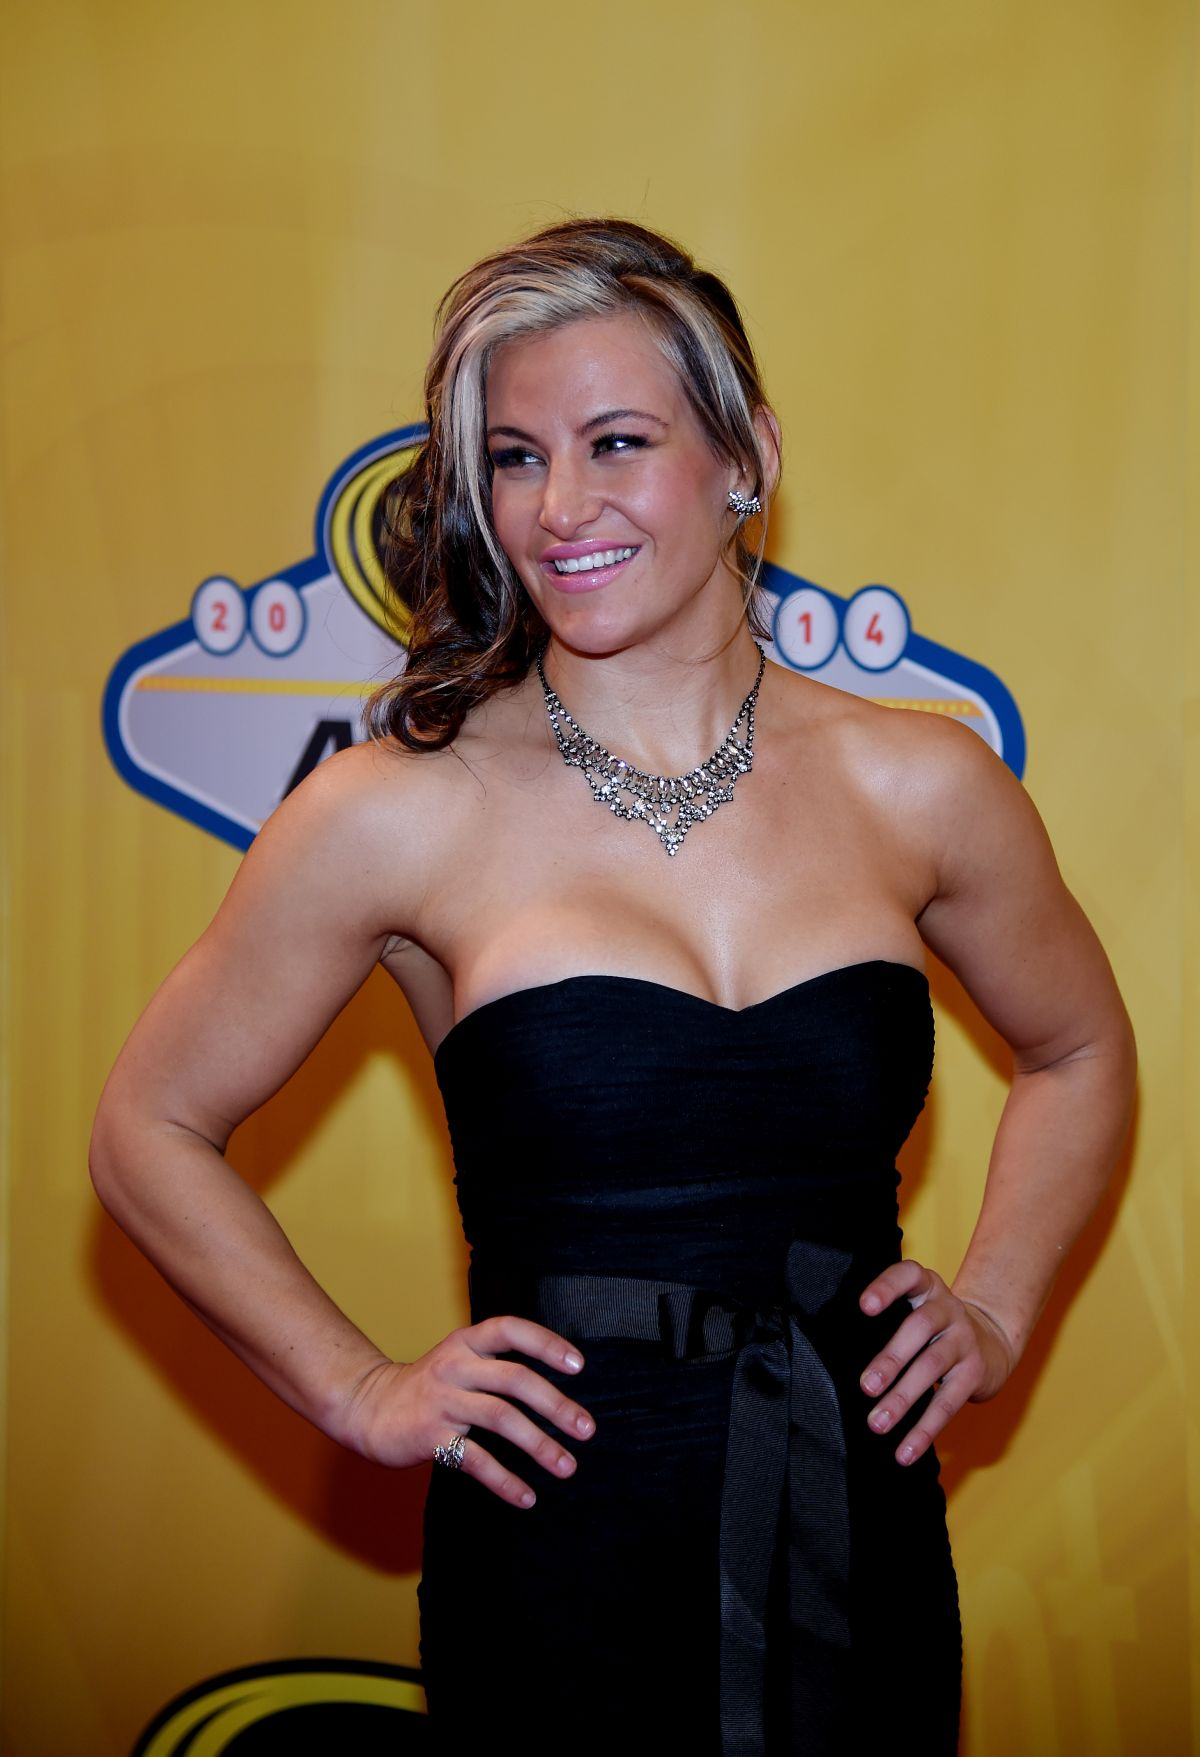 MEISHA TATE at 2014 Nascar Sprint Cup Series Awards in Las Vegas